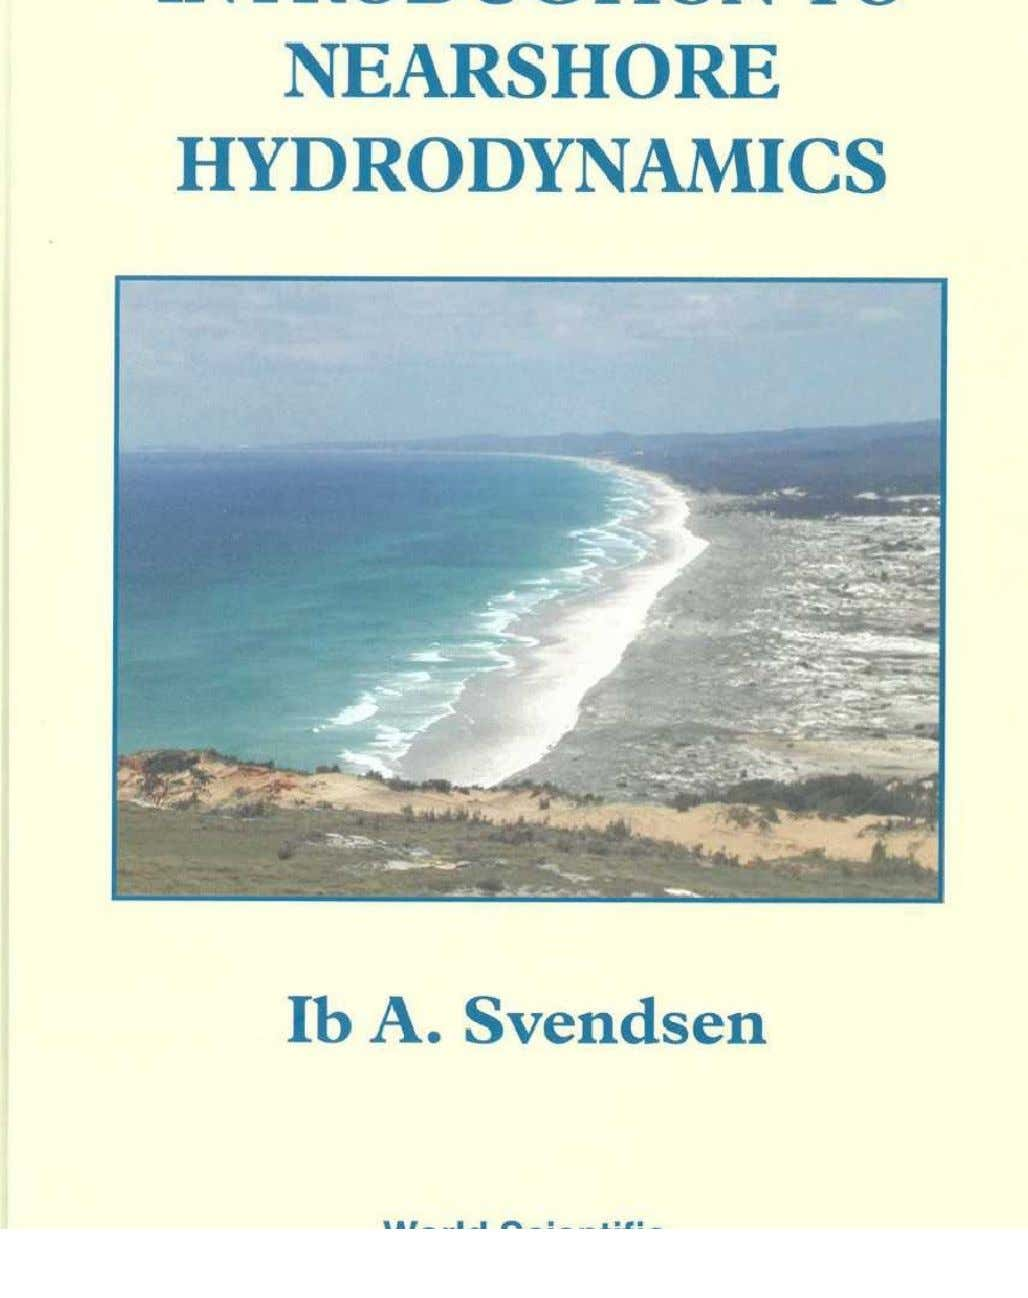 Nearshore Hydrodynamics http://www.scribd.com/doc/36802548/Introduction-to-Nearshore-Hydr 745 2 of 783 2/3/2012 1:31 PM